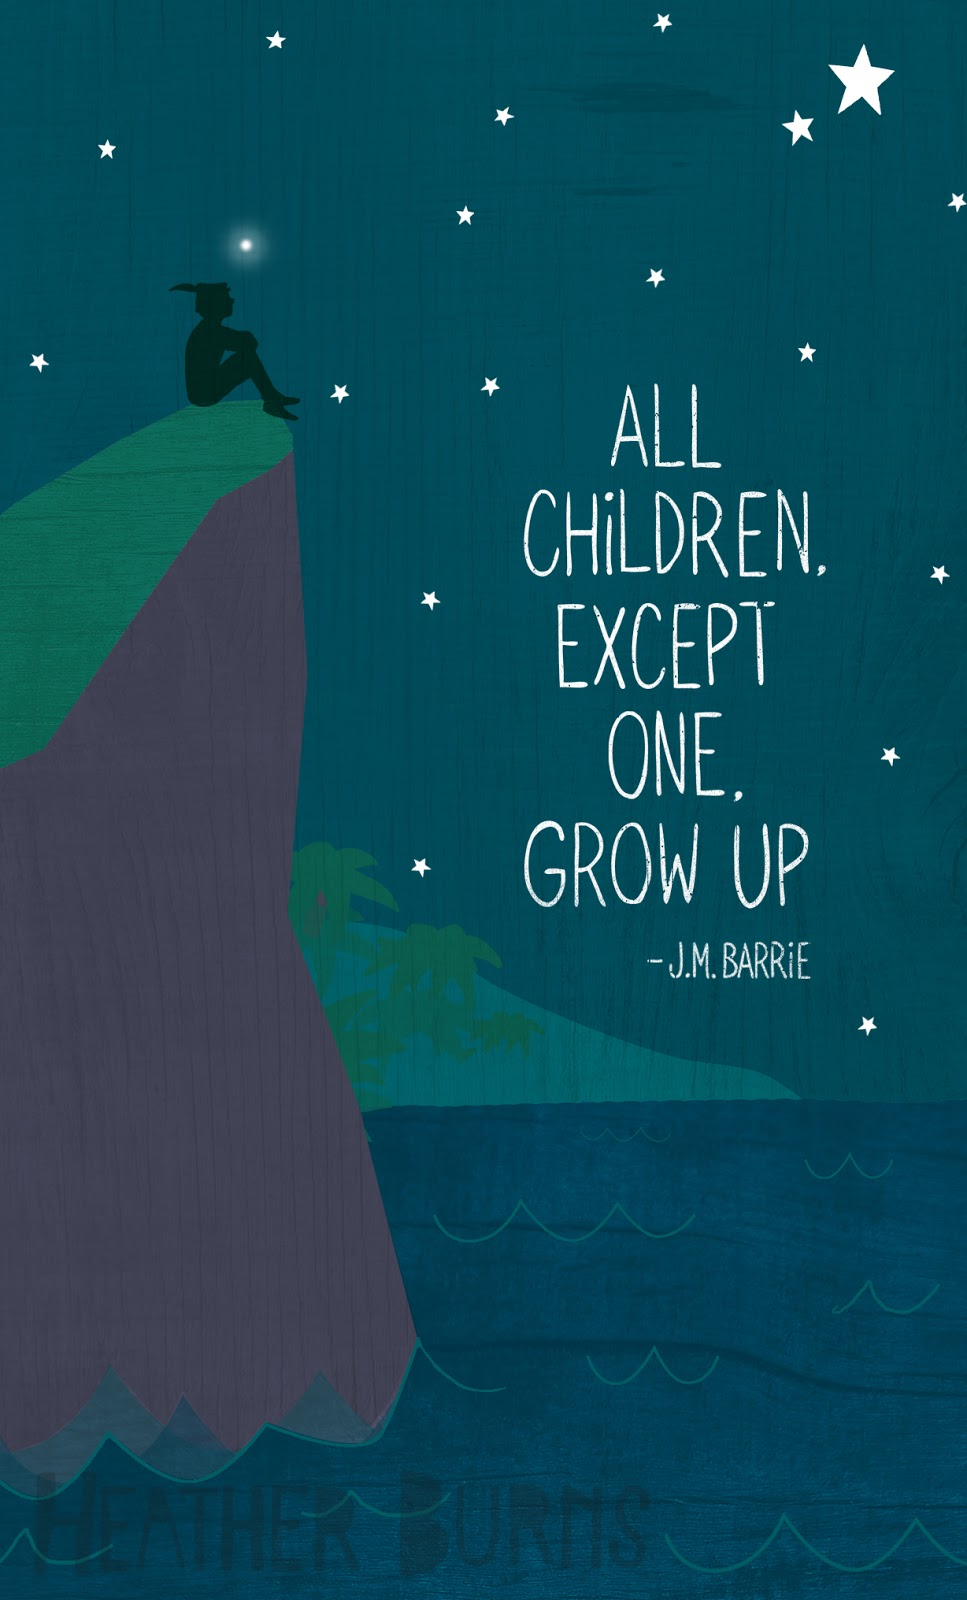 Heather Burns Illustration All Children Except One Grow Up